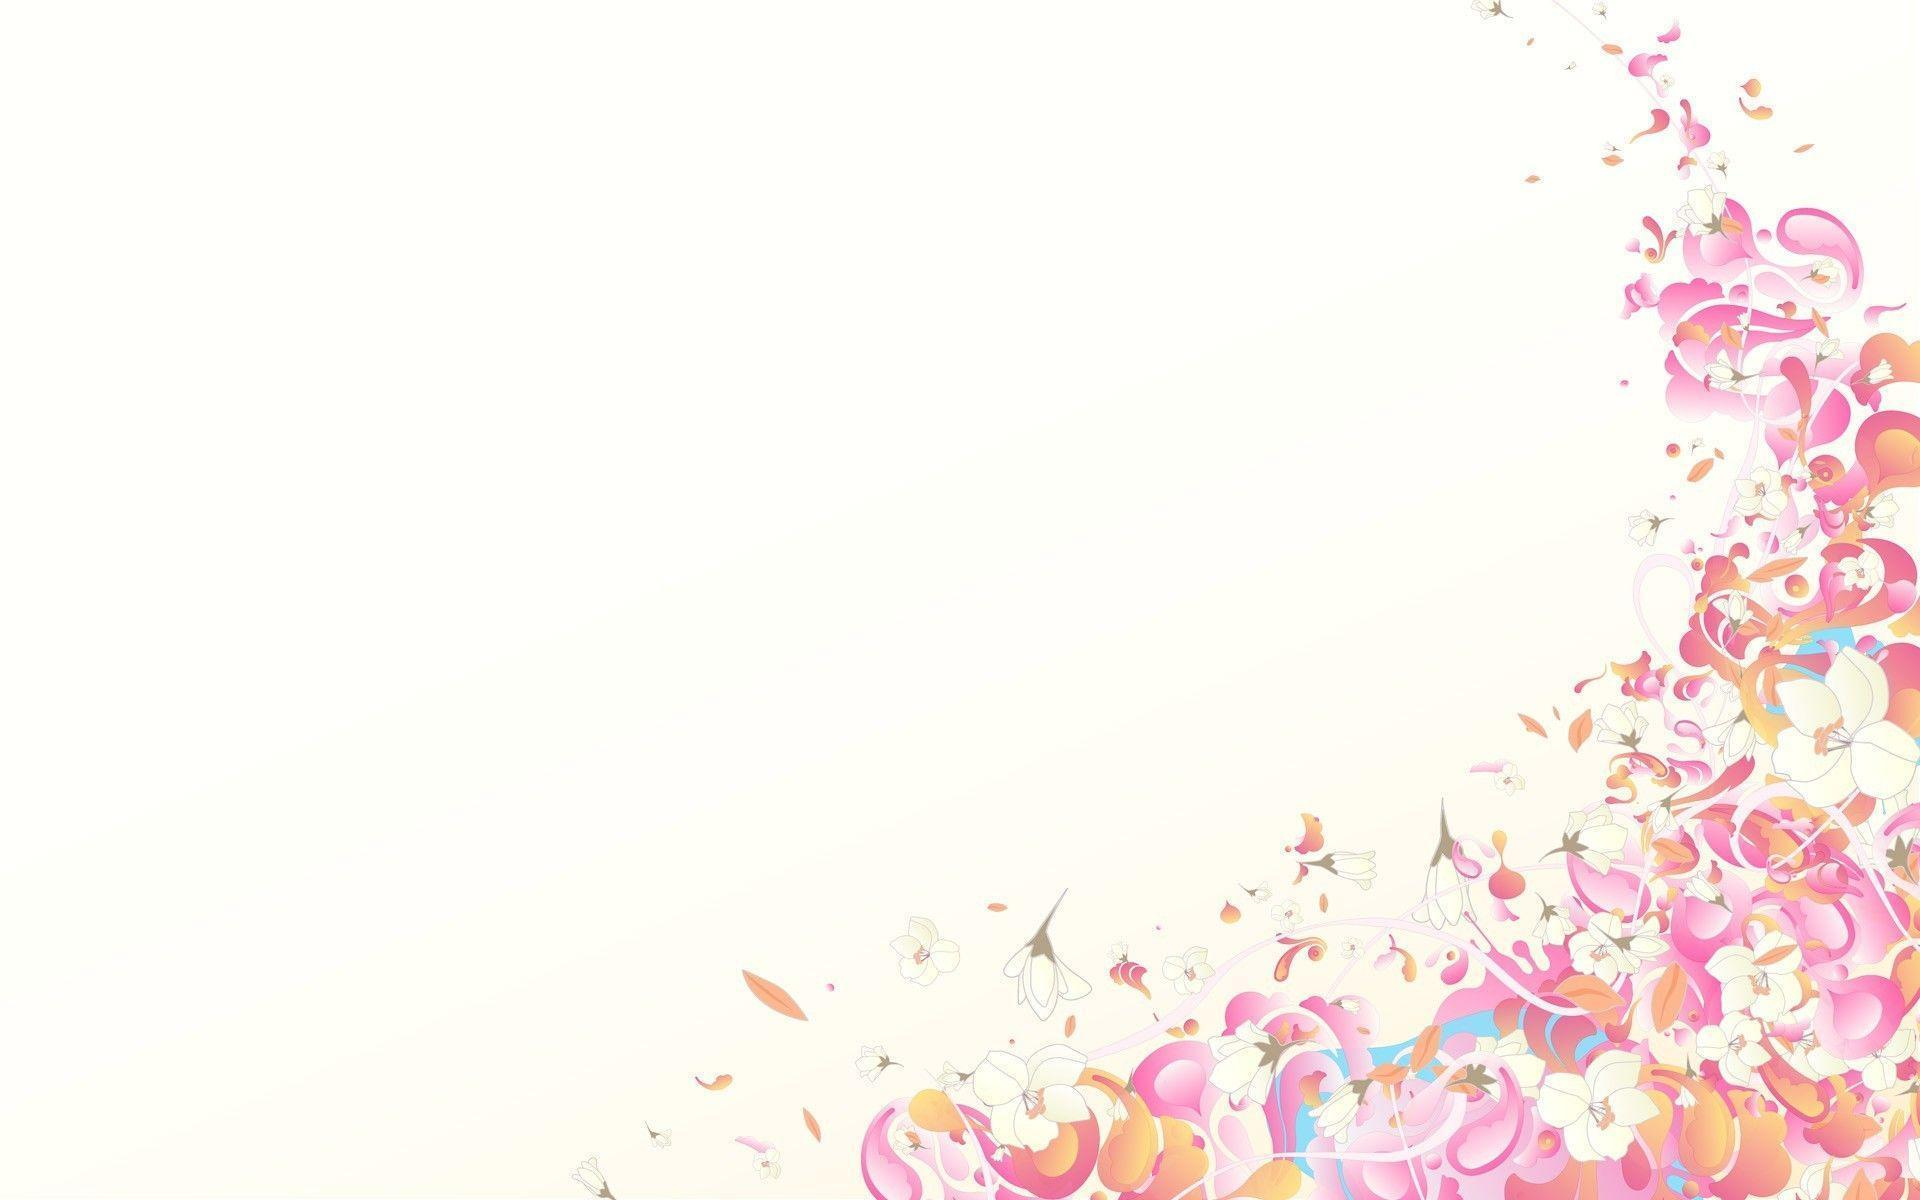 pastel desktop wallpaper - photo #1